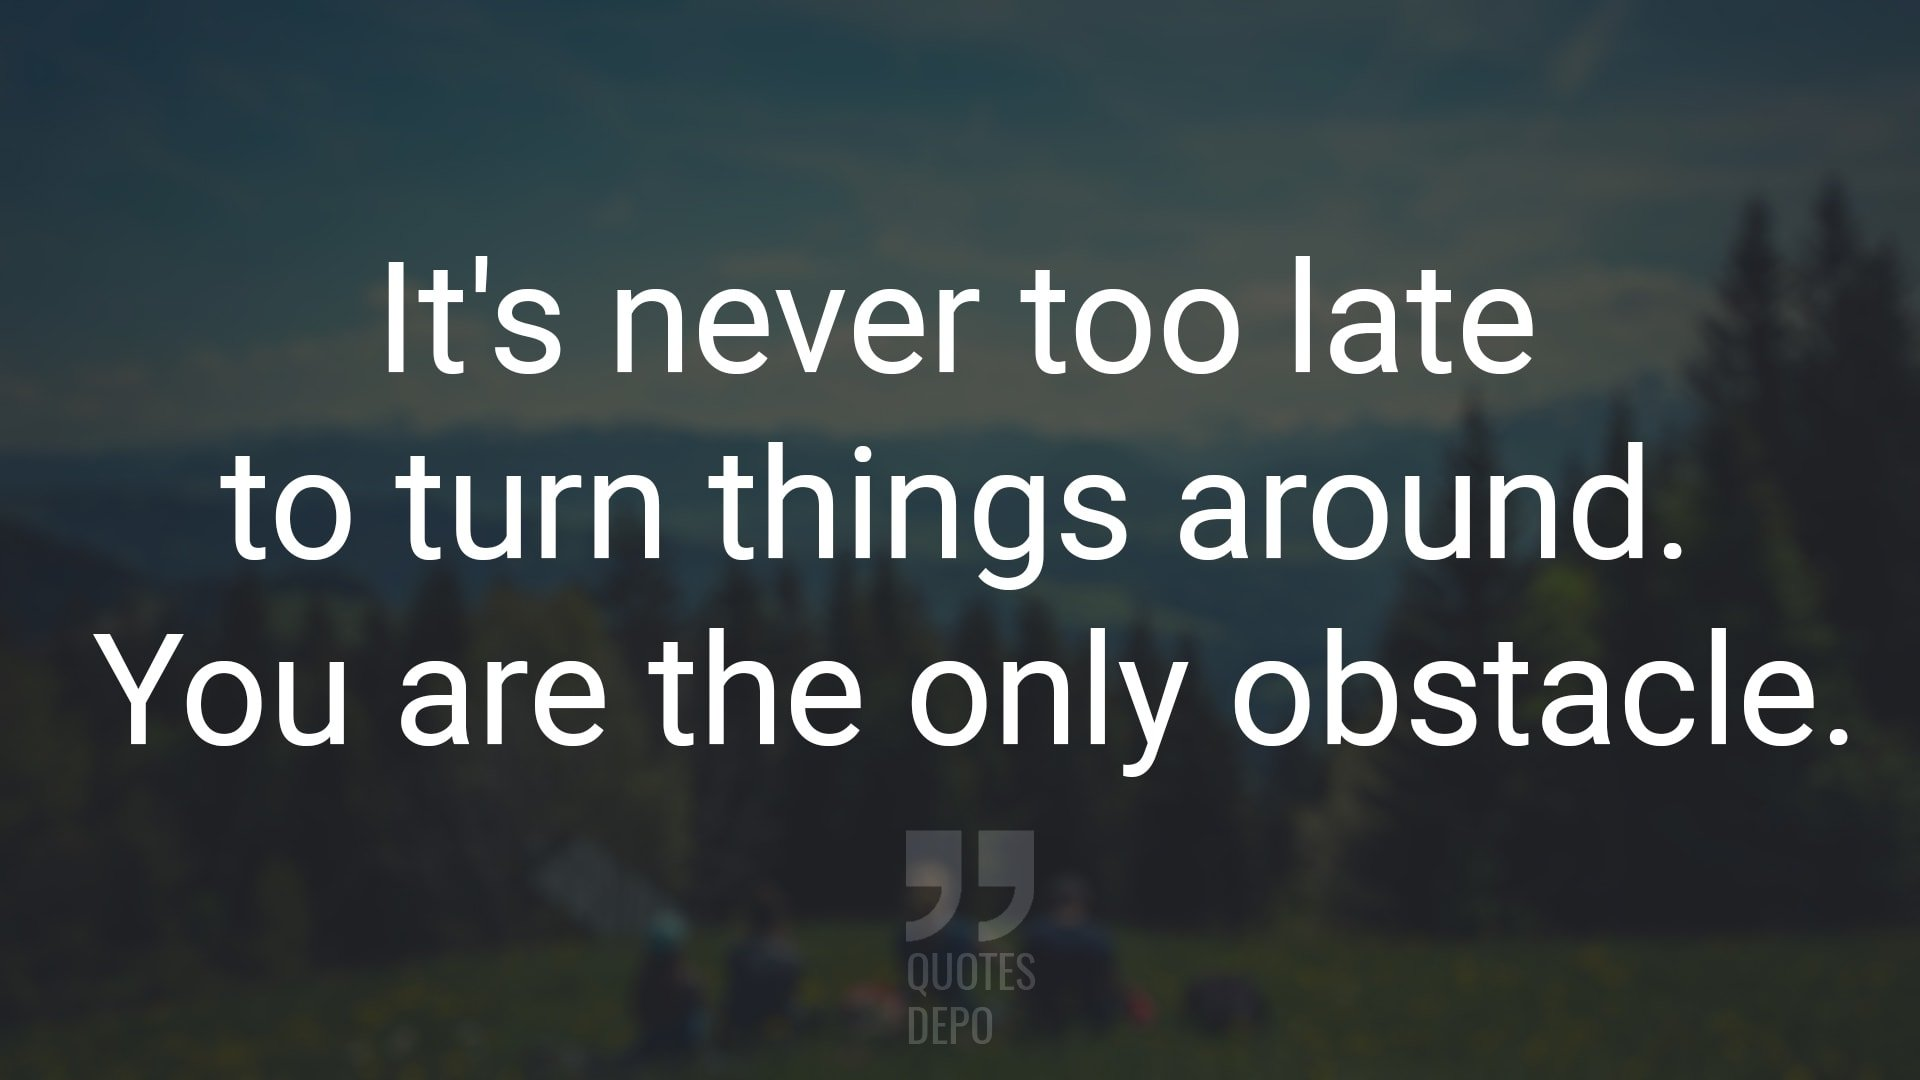 It's Never too Late to Turn Things Around